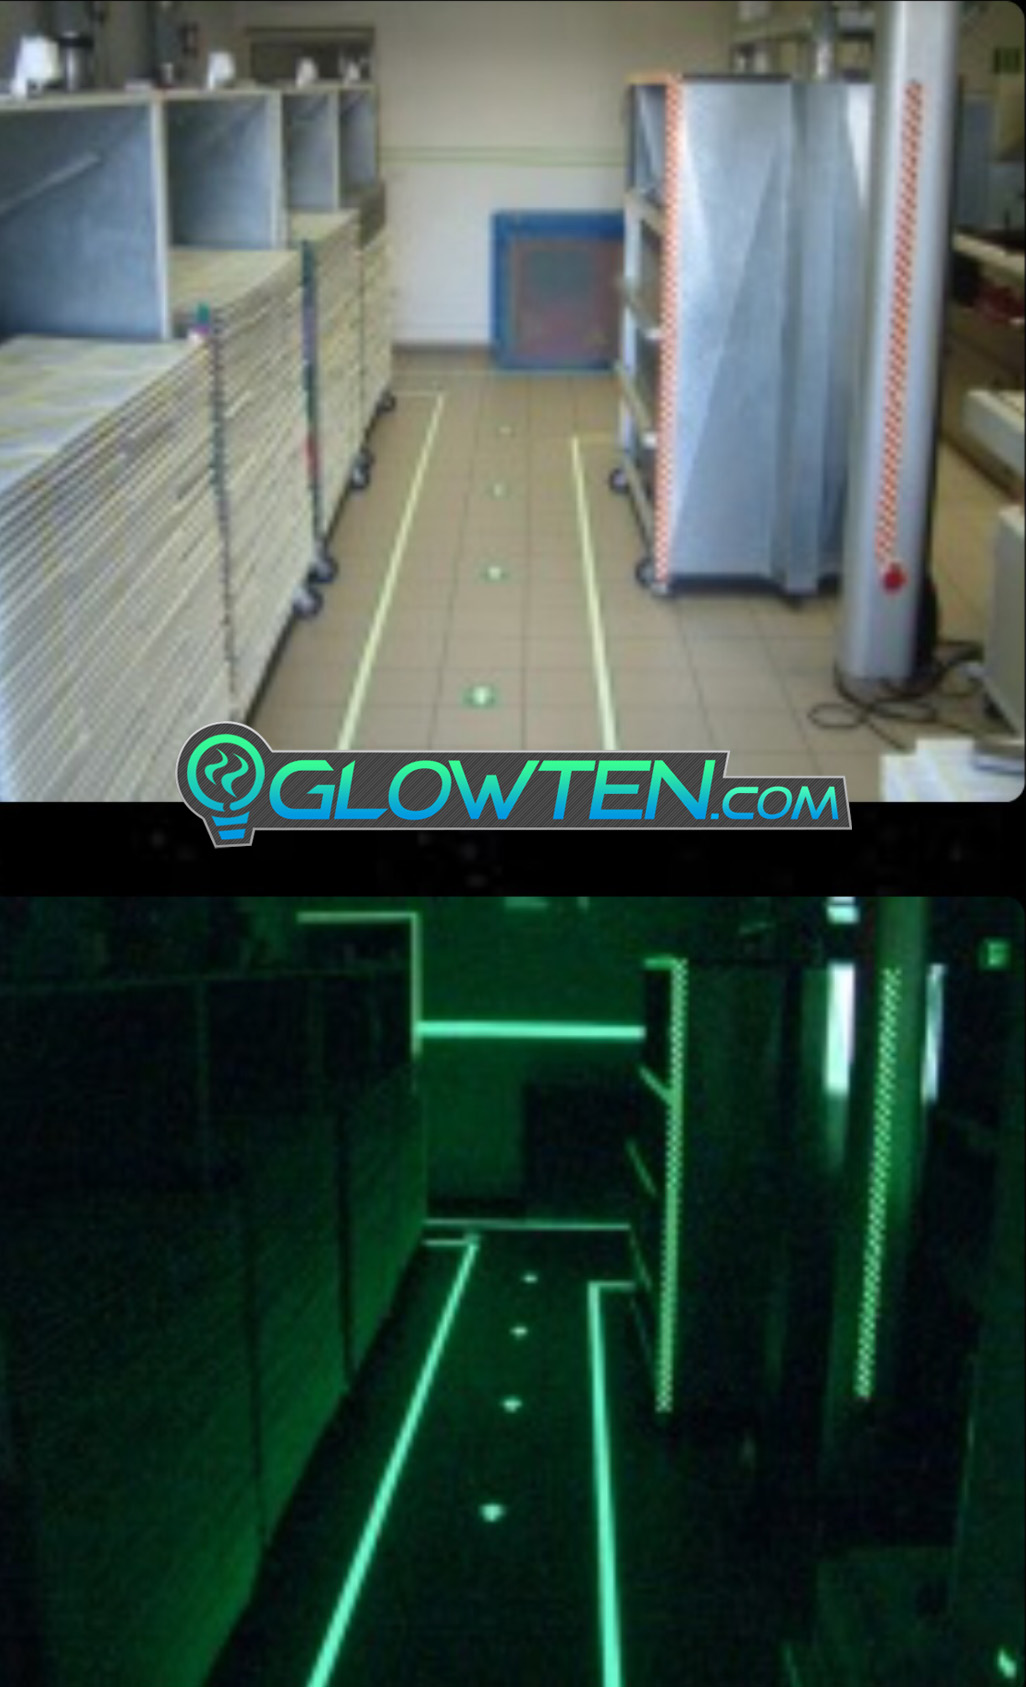 GLOWTEN.com - ARROW POINT TAPE Glow in the Dark Green Single Direction Sign All Purpose Tape Roll Lite Green pic 9